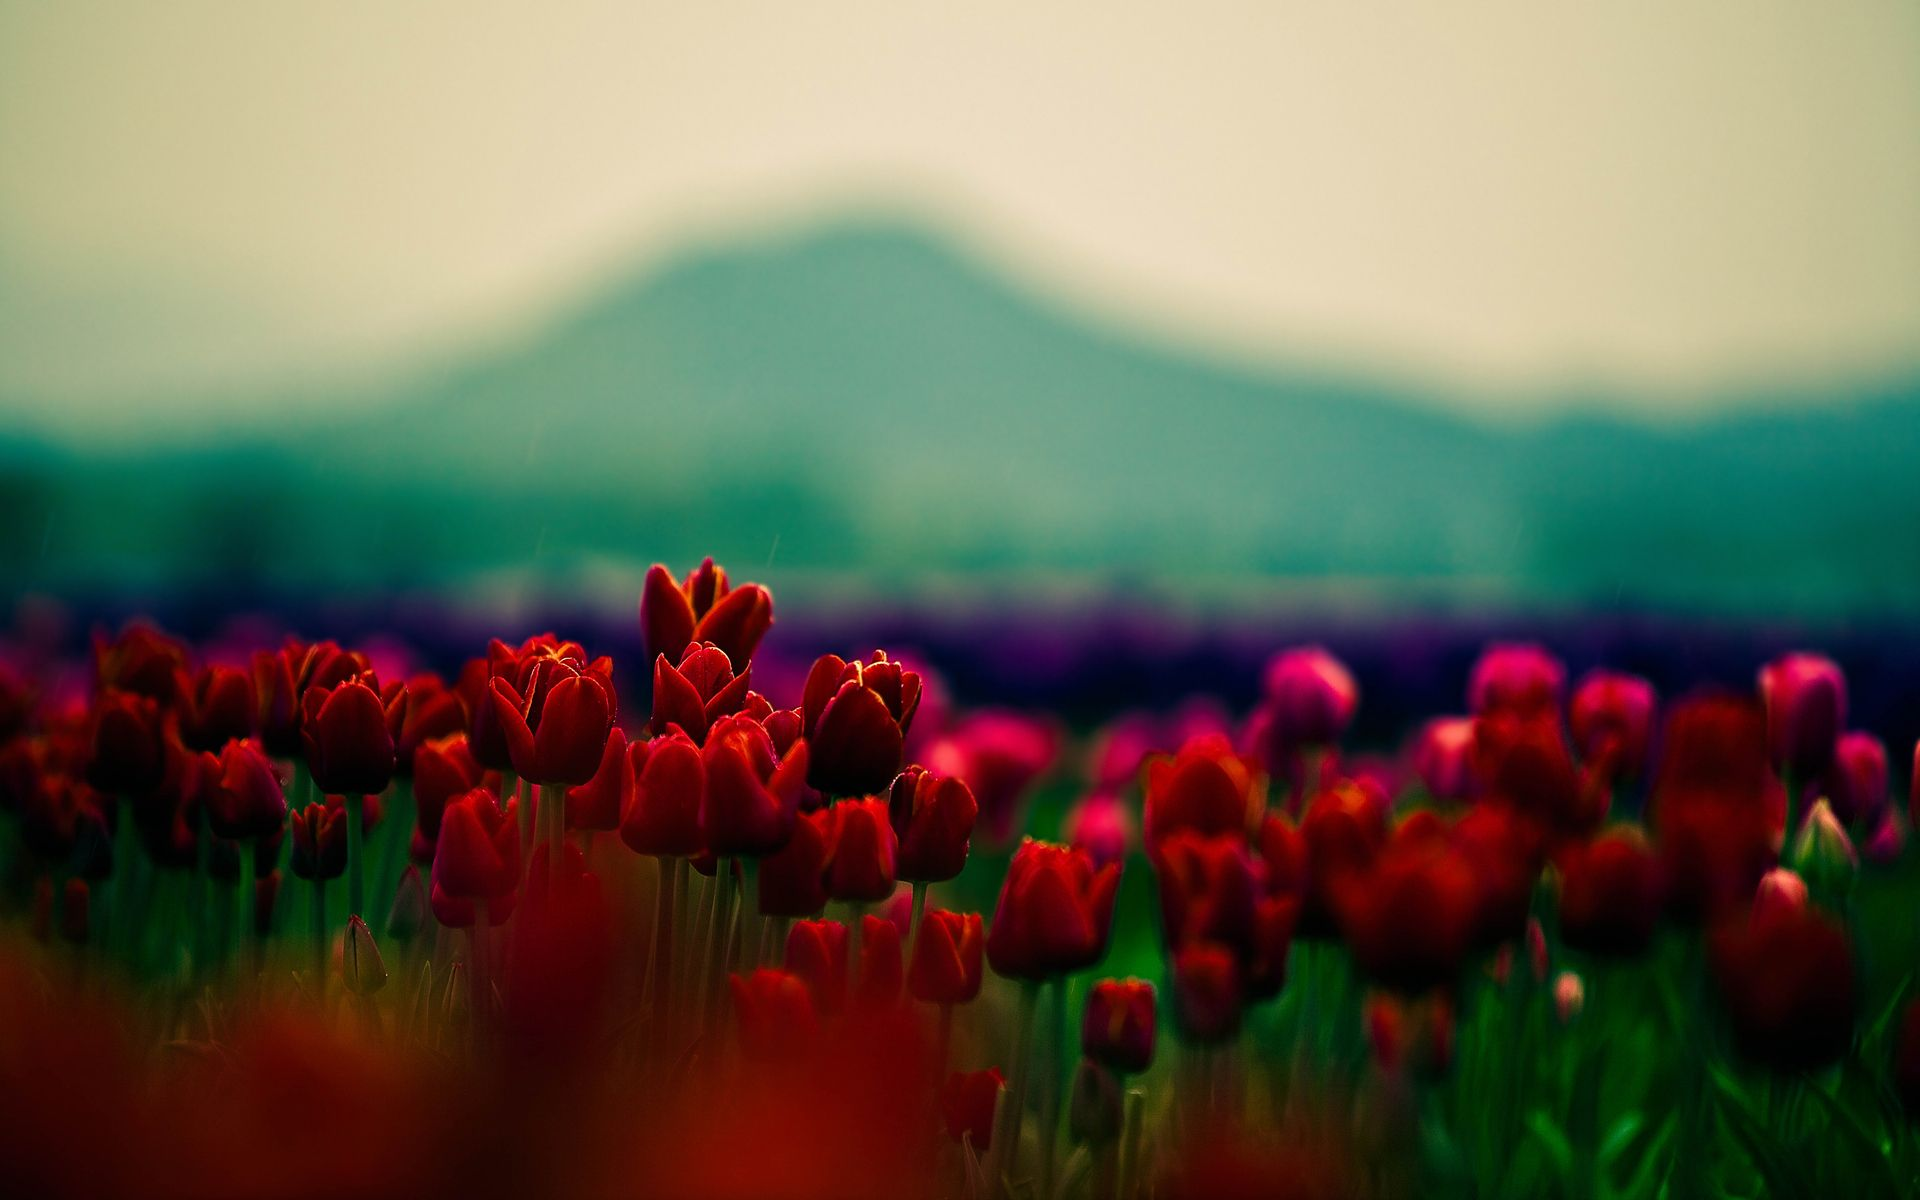 Red Tulips Wallpaper Red Tulips Flower Wallpaper Field Wallpaper